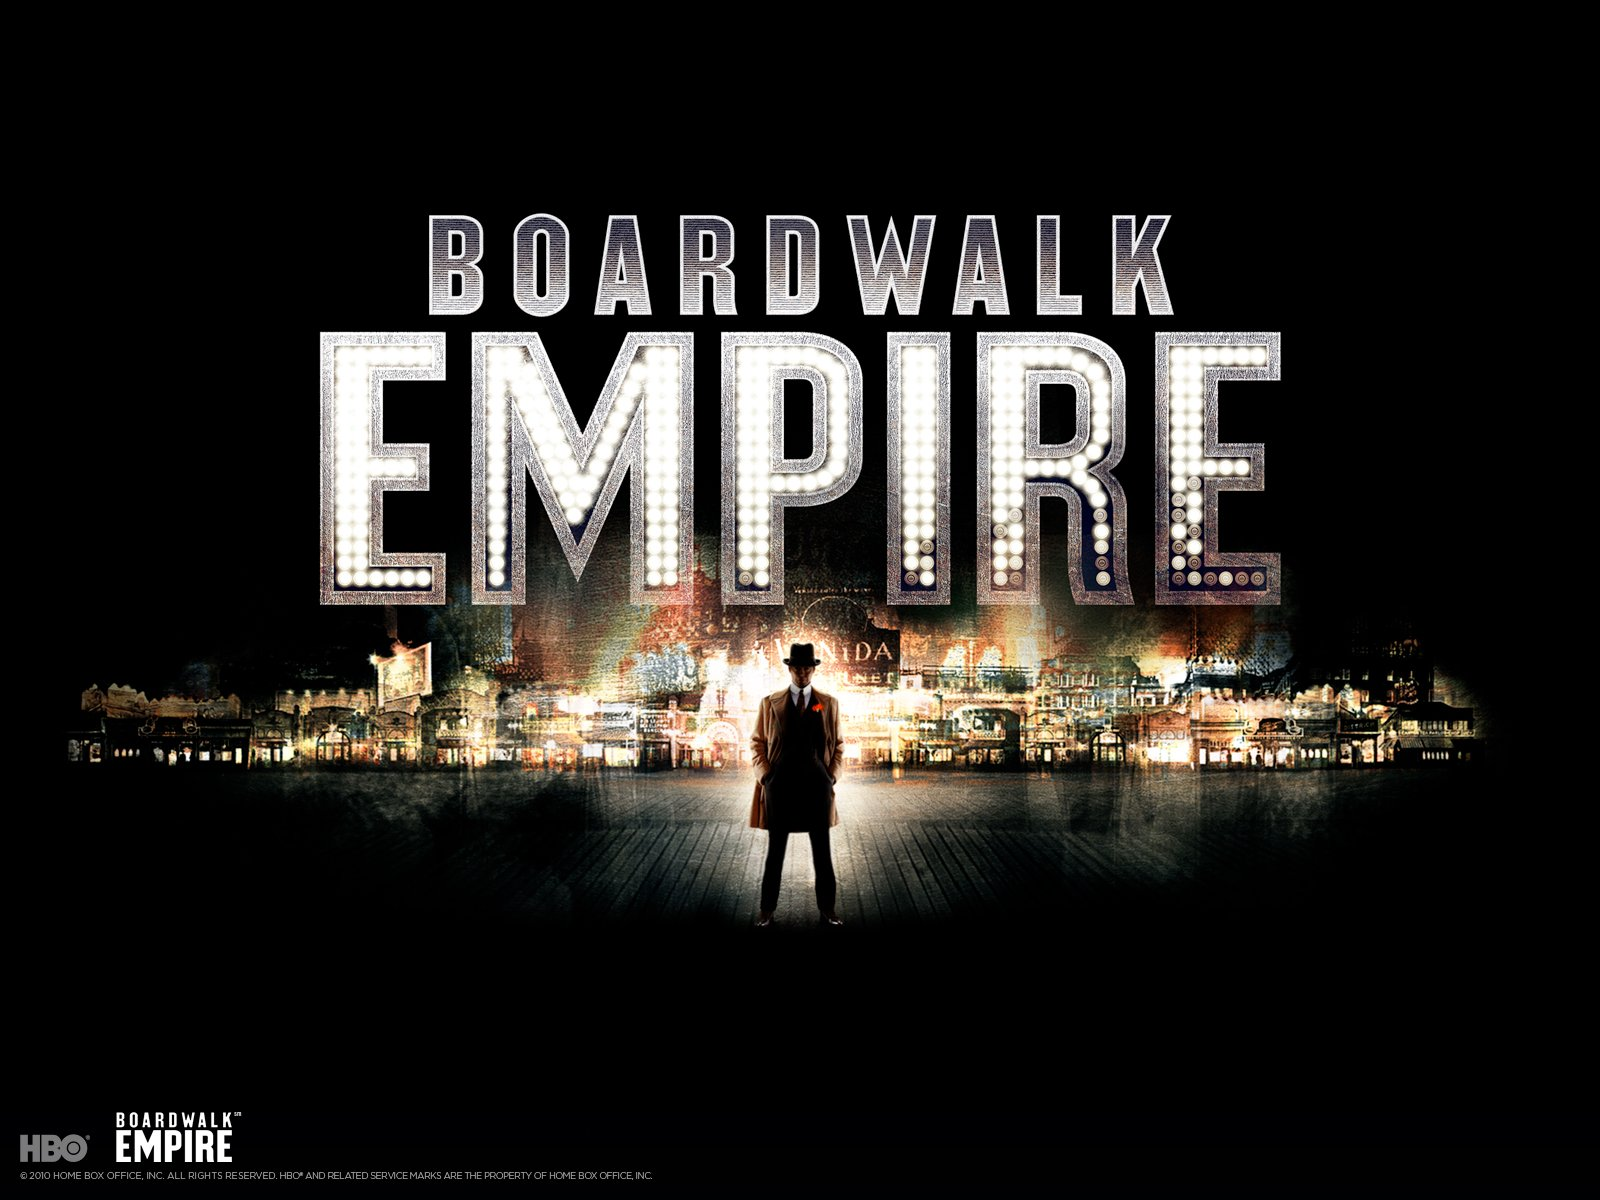 William Forsythe & Charlie Cox Join The Boardwalk Empire Cast For Season 2